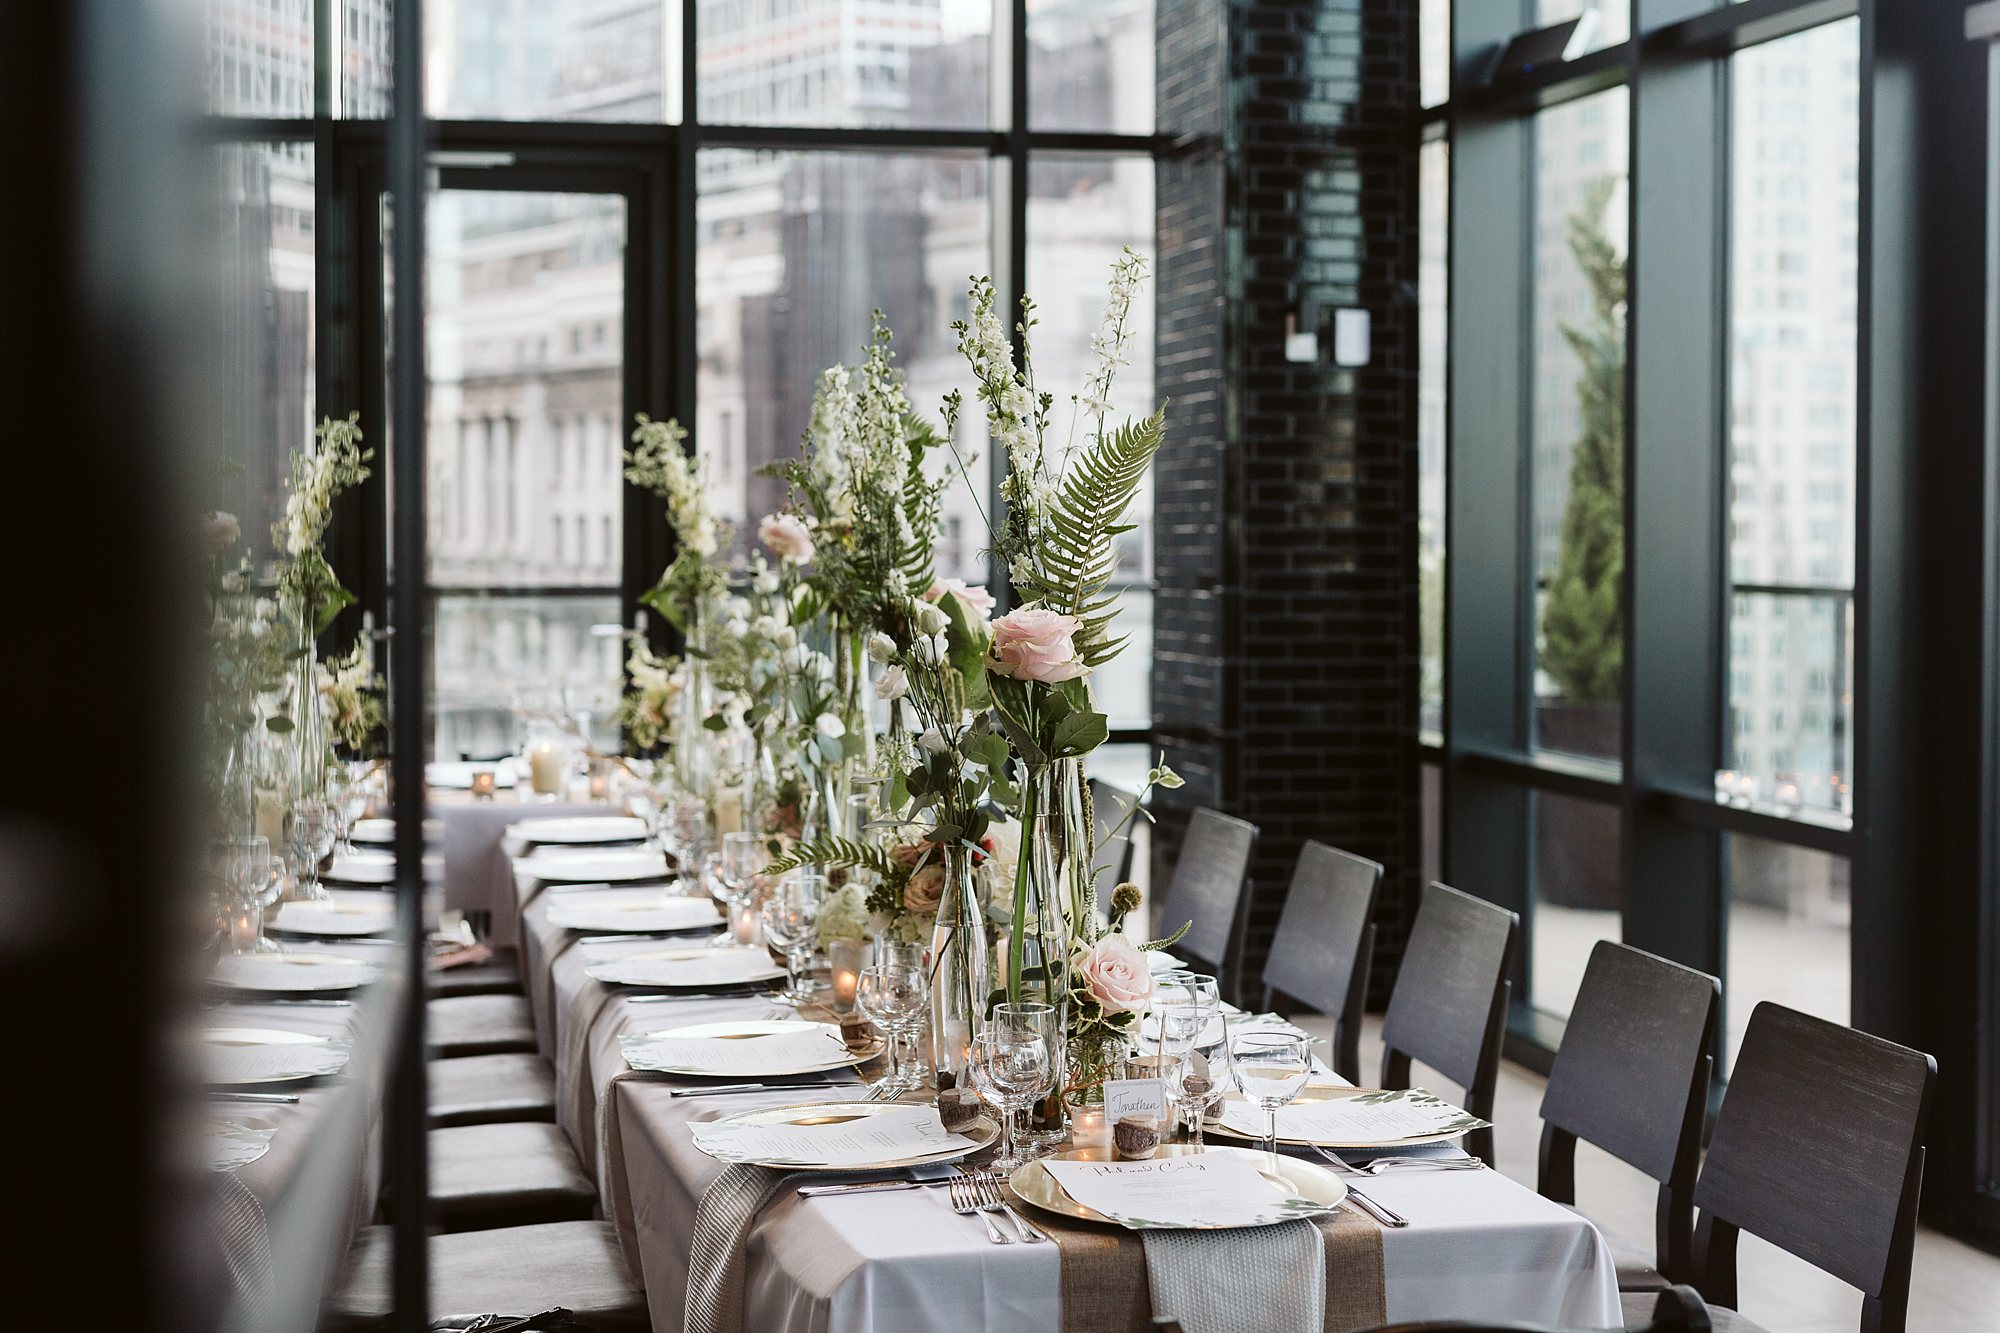 downtown manhattan intimate wedding dinner photos by NYC elopement photographer Sarah Sayeed